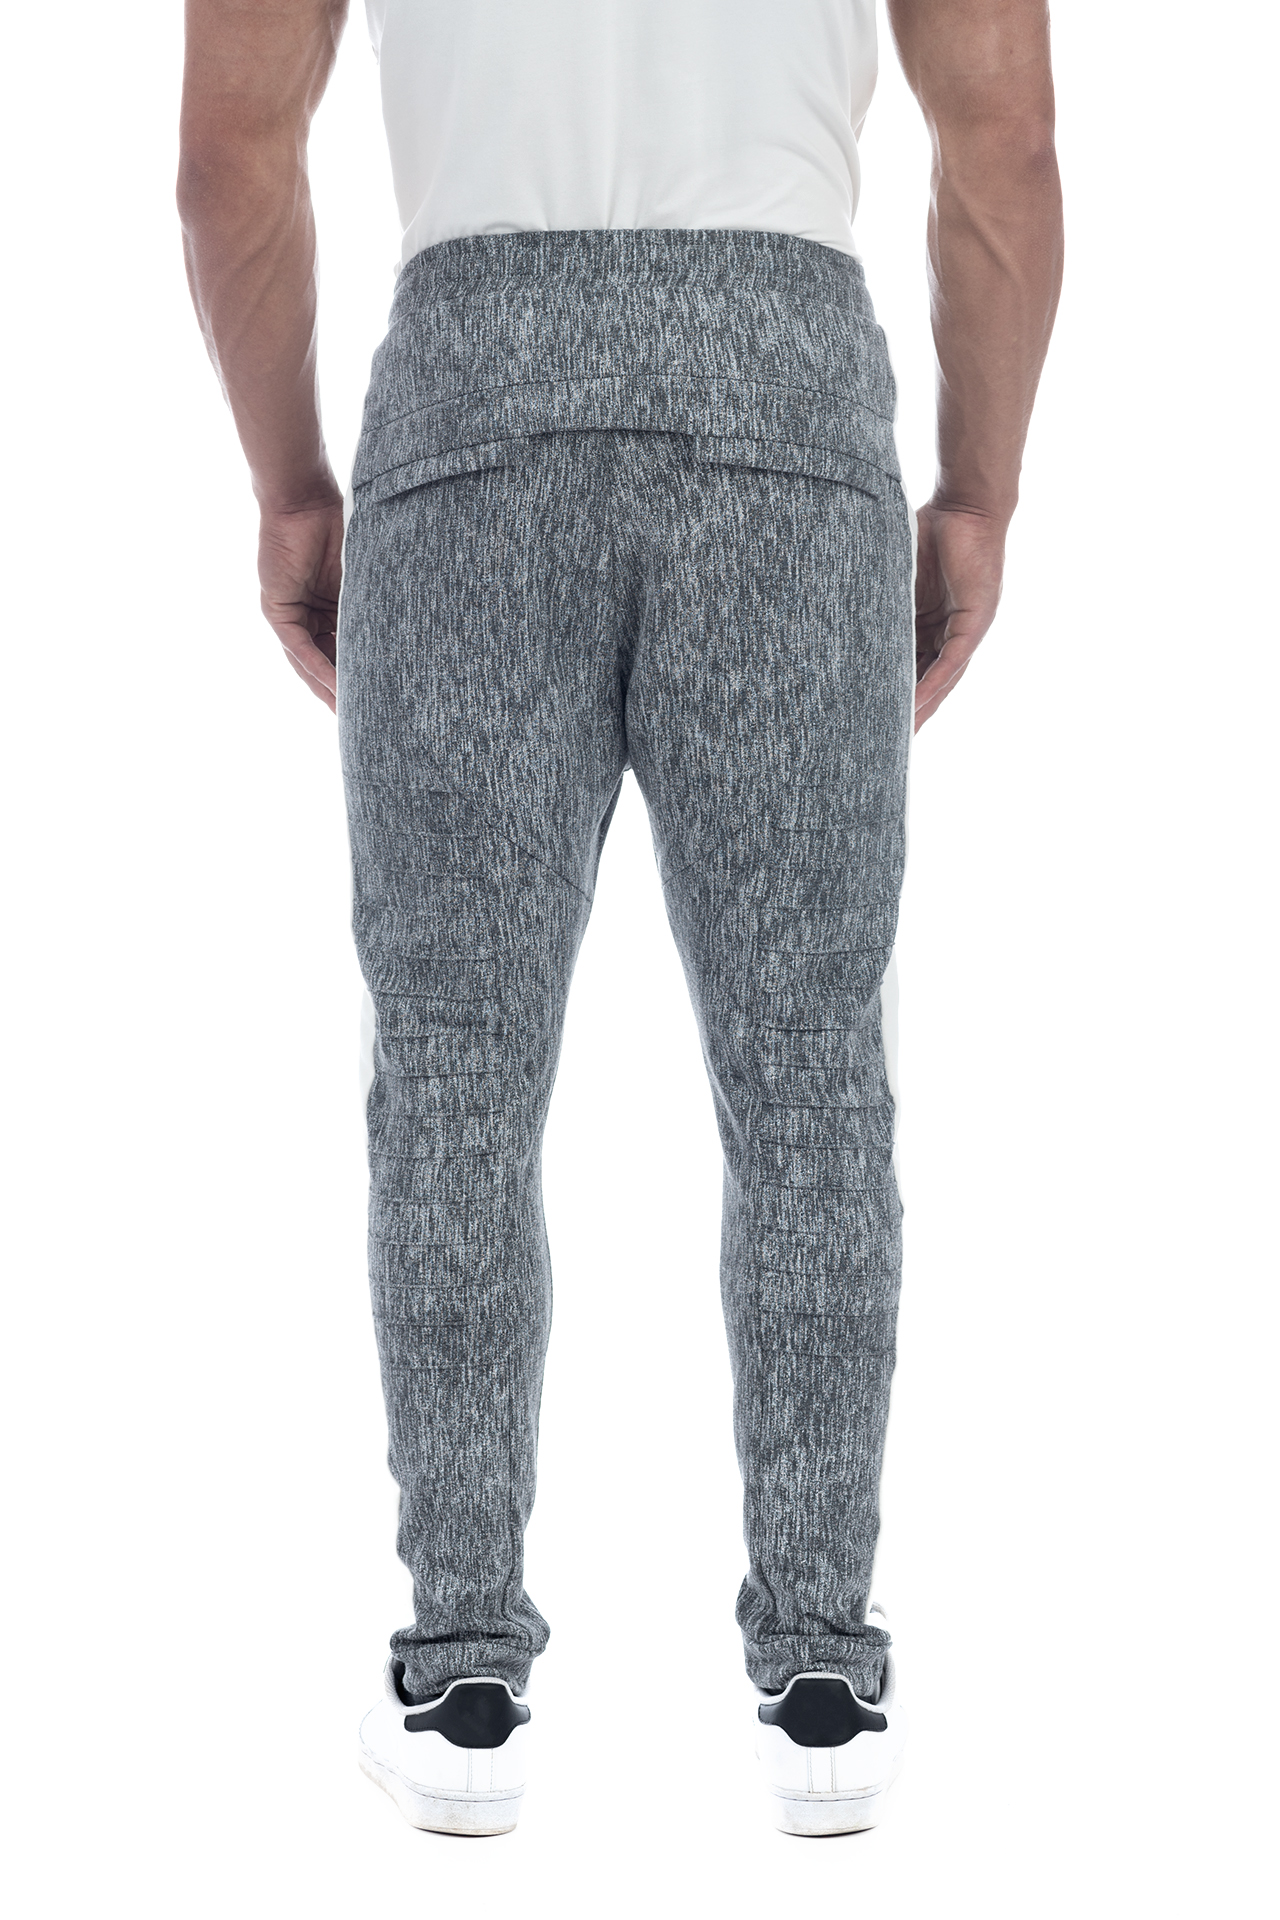 FRENCH TERRY PANT GREY 3